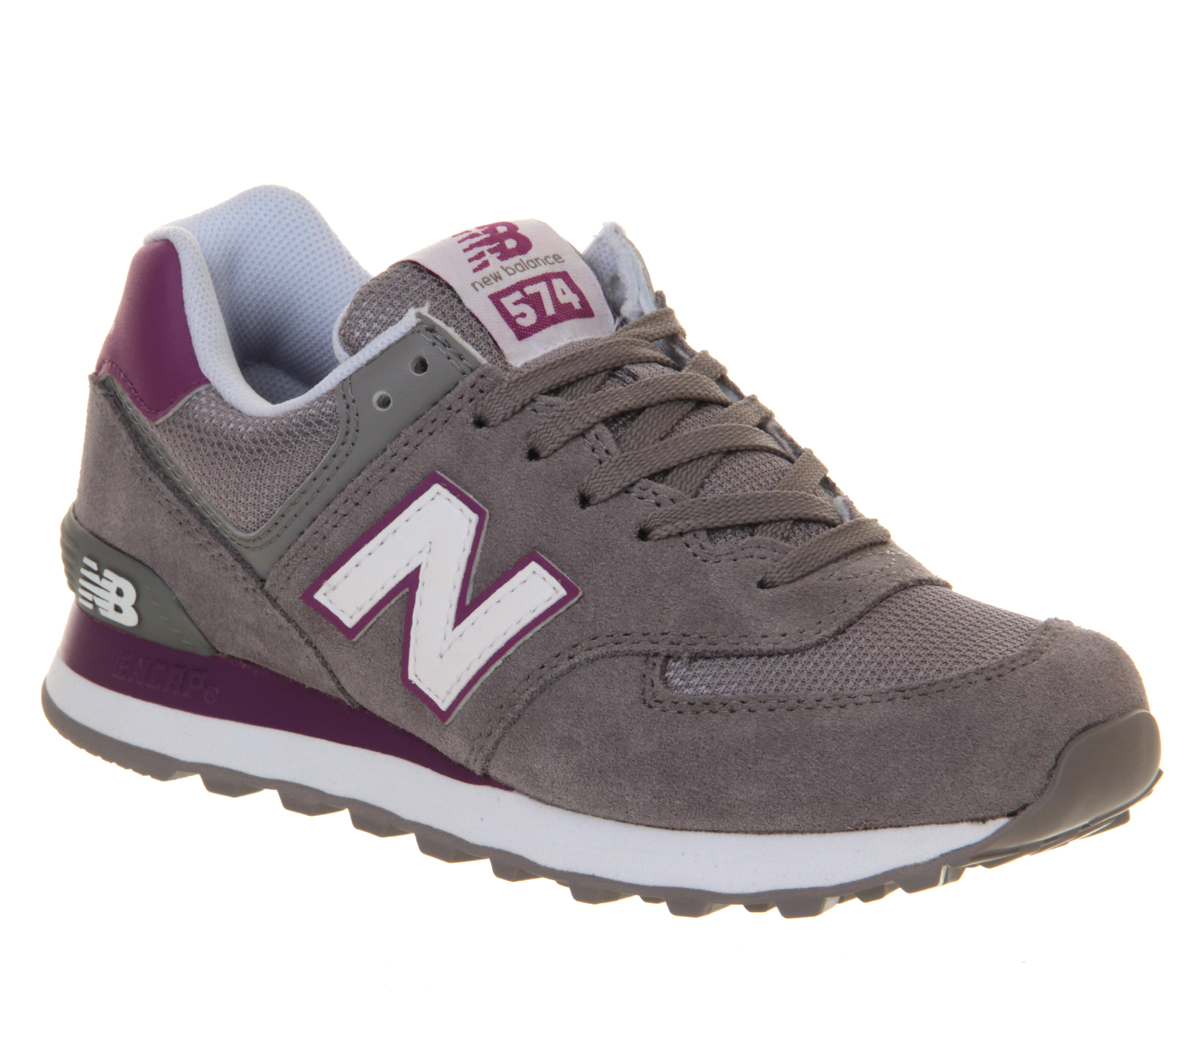 new balance 574 black grey white purple